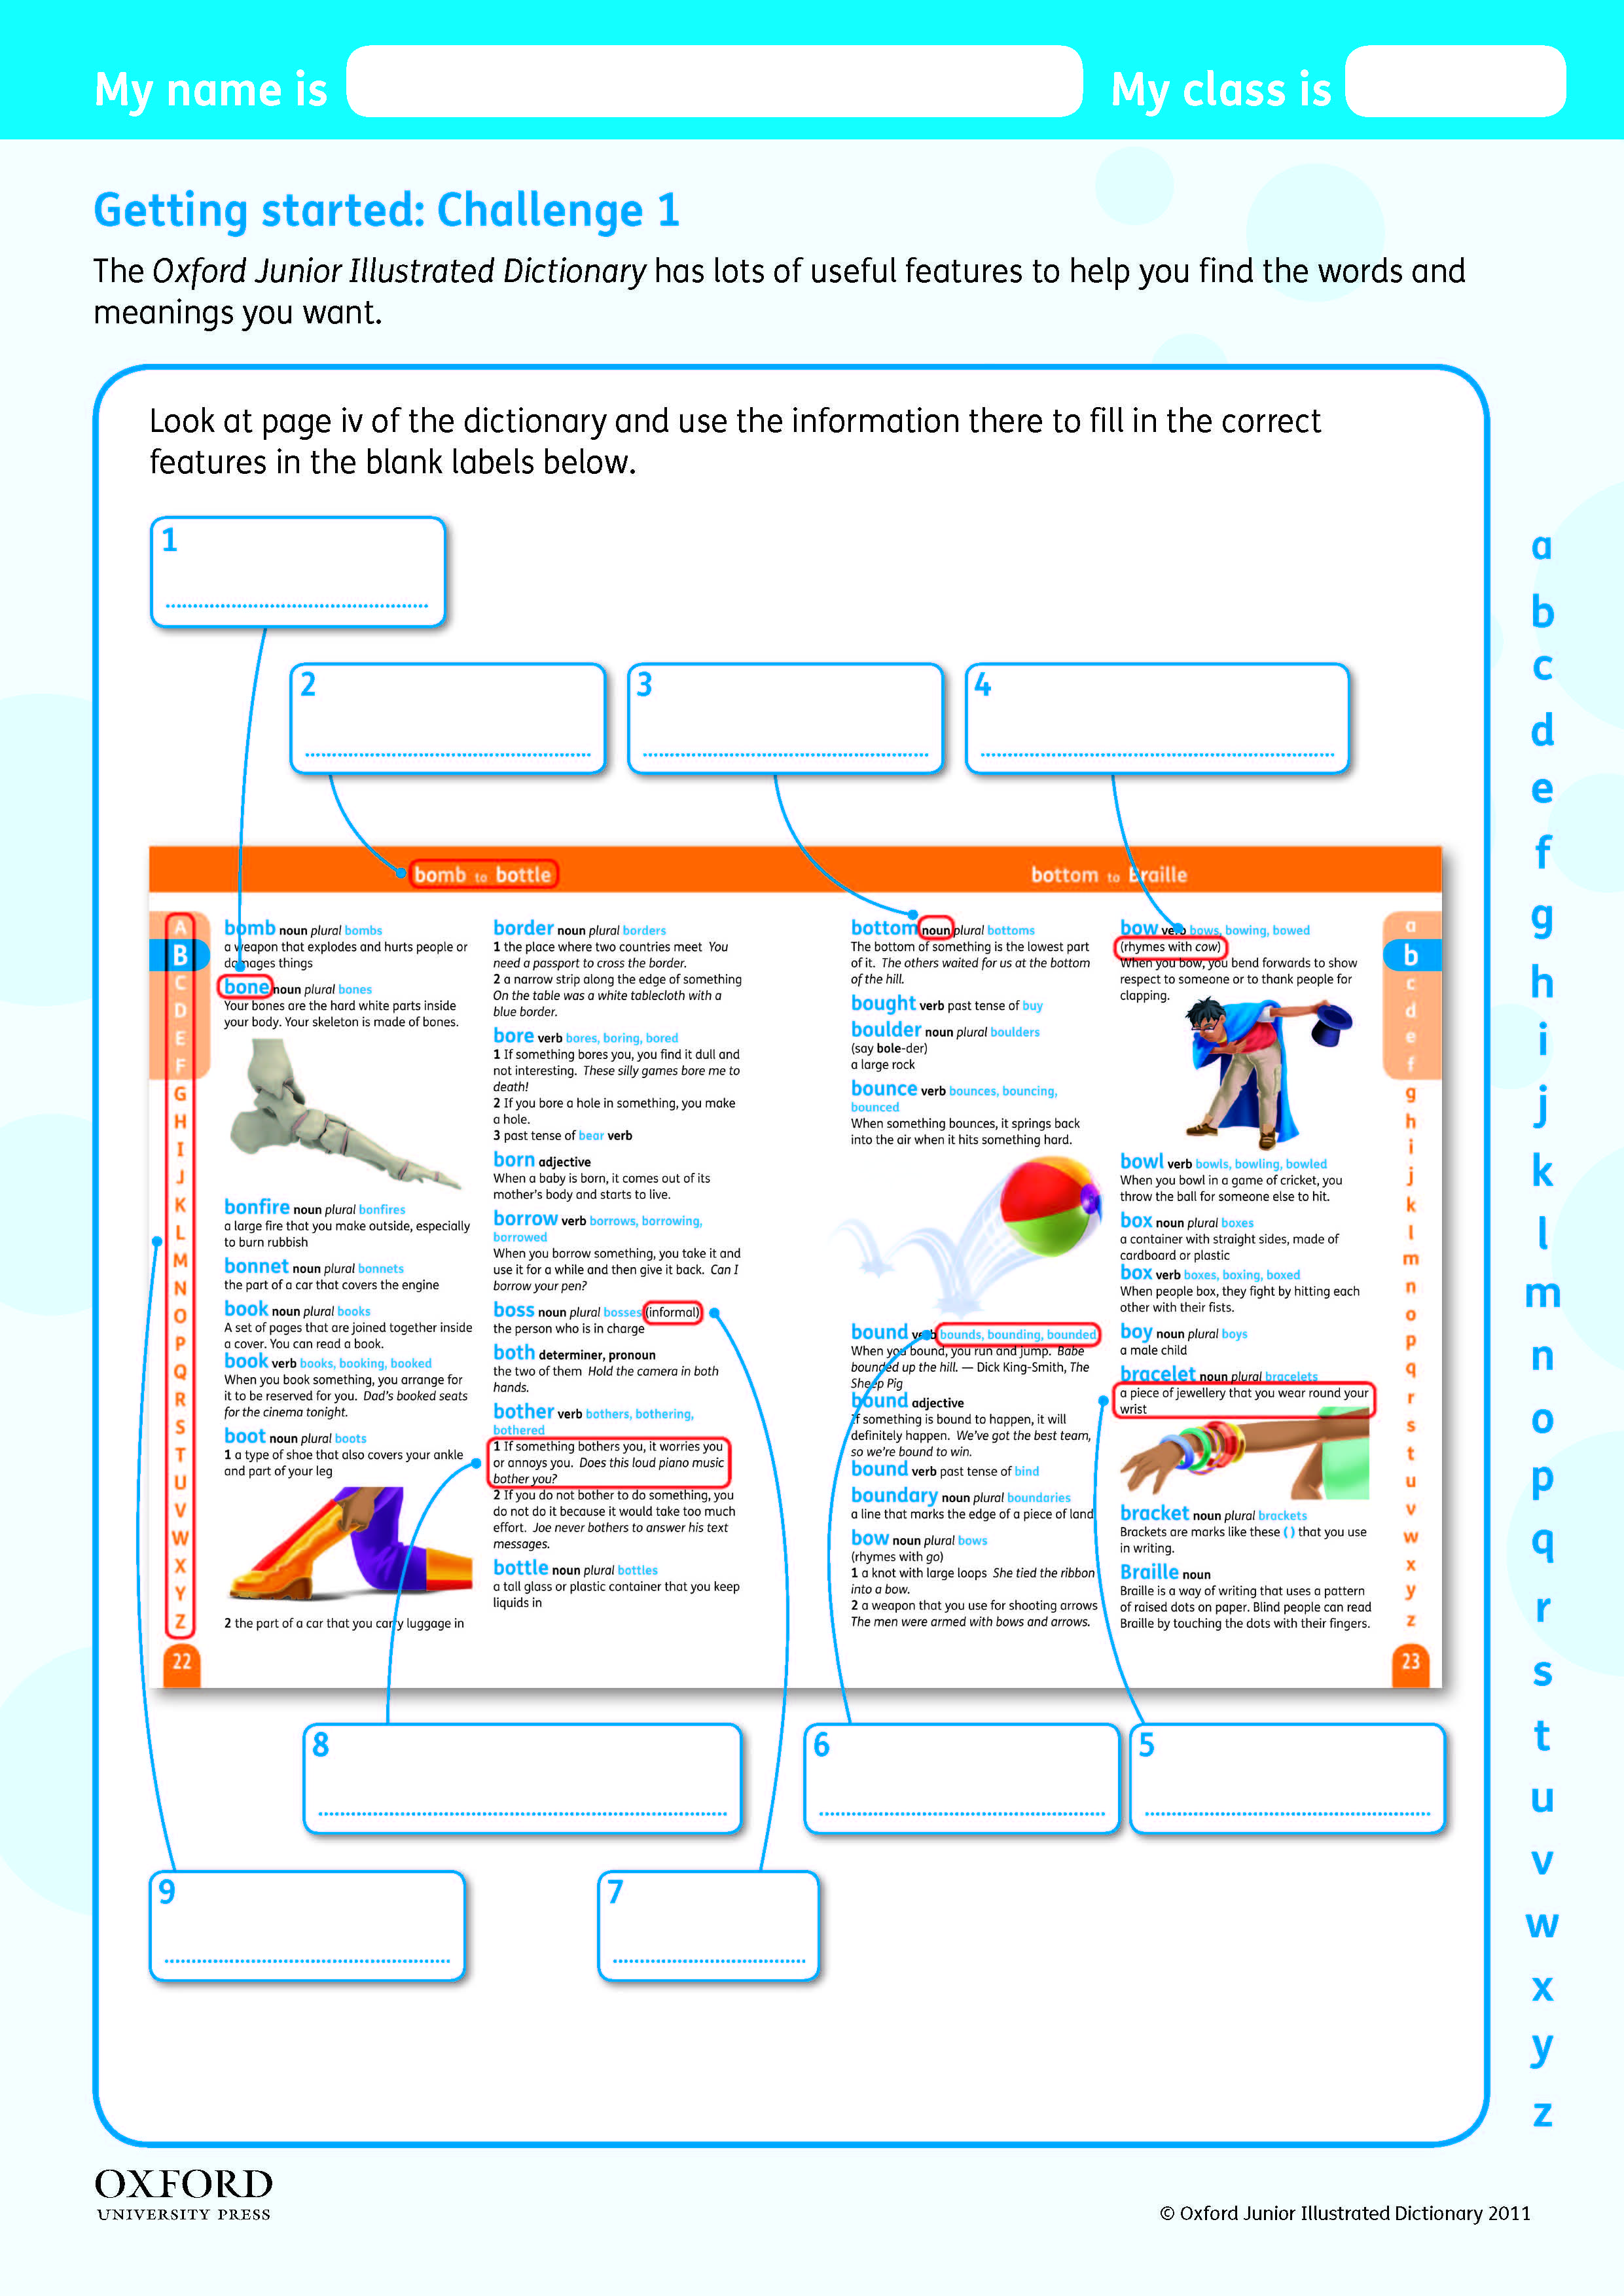 Download Your Free Oxford Junior Illustrated Dictionary Challenge Worksheet Teach Children The Features Of A Dictionary Dictionary Teaching Education [ 3508 x 2481 Pixel ]